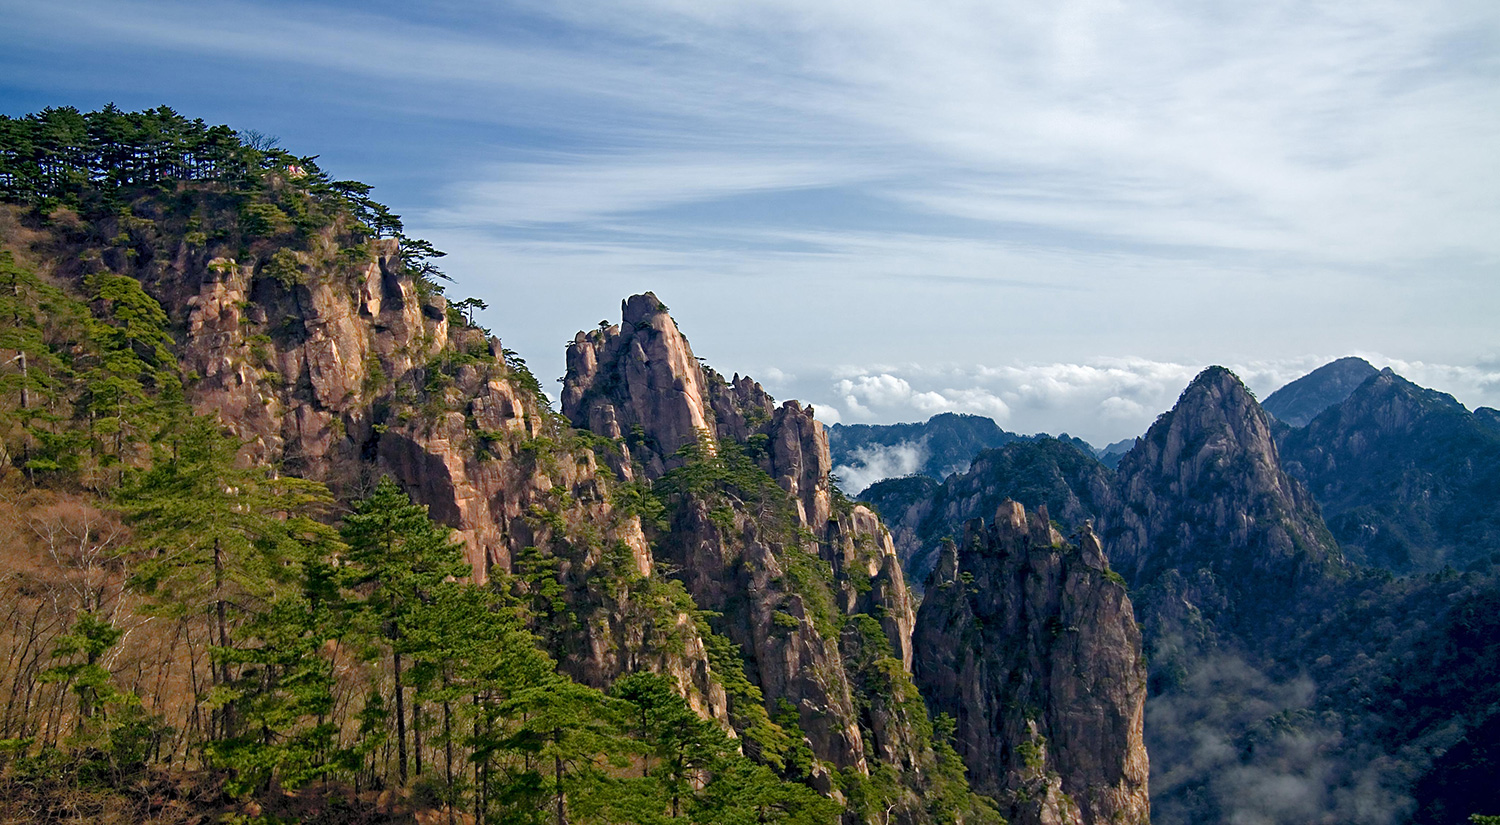 Greatest Mountains of the World- Huangshan